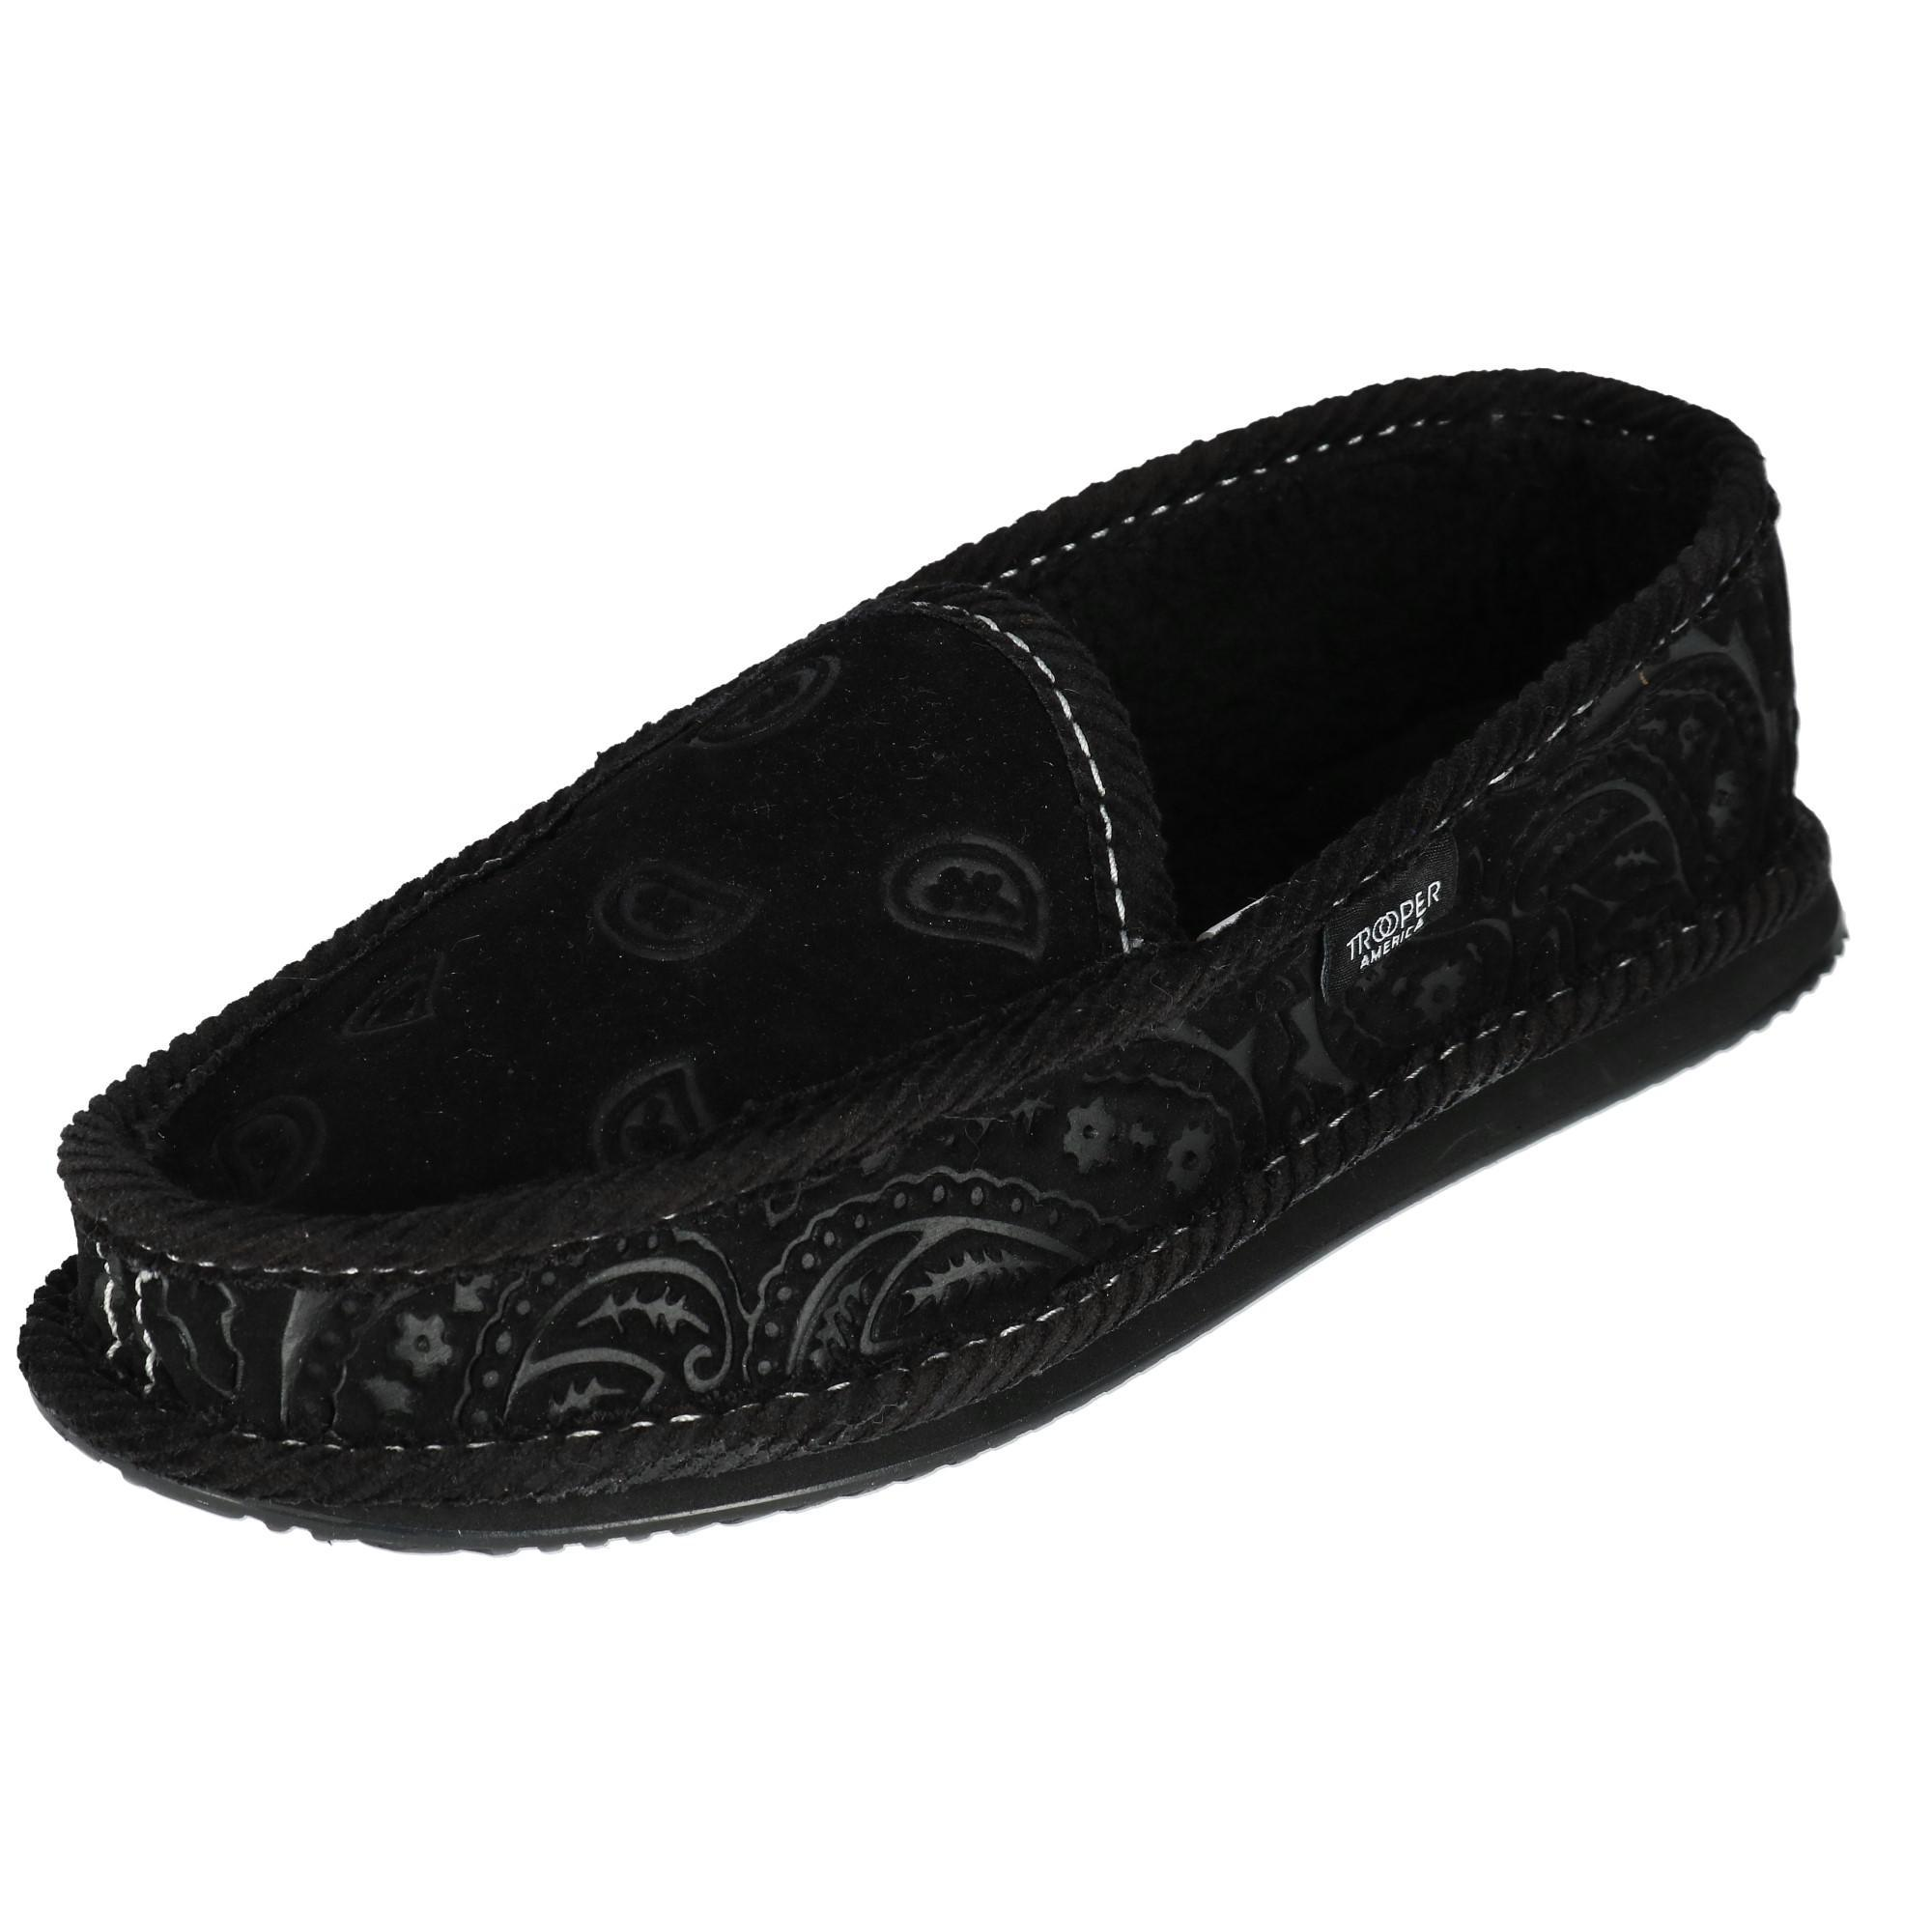 520647add2c3 Details about New Trooper America Men s Monotone Paisley Bandana Print  House Shoe Slippers